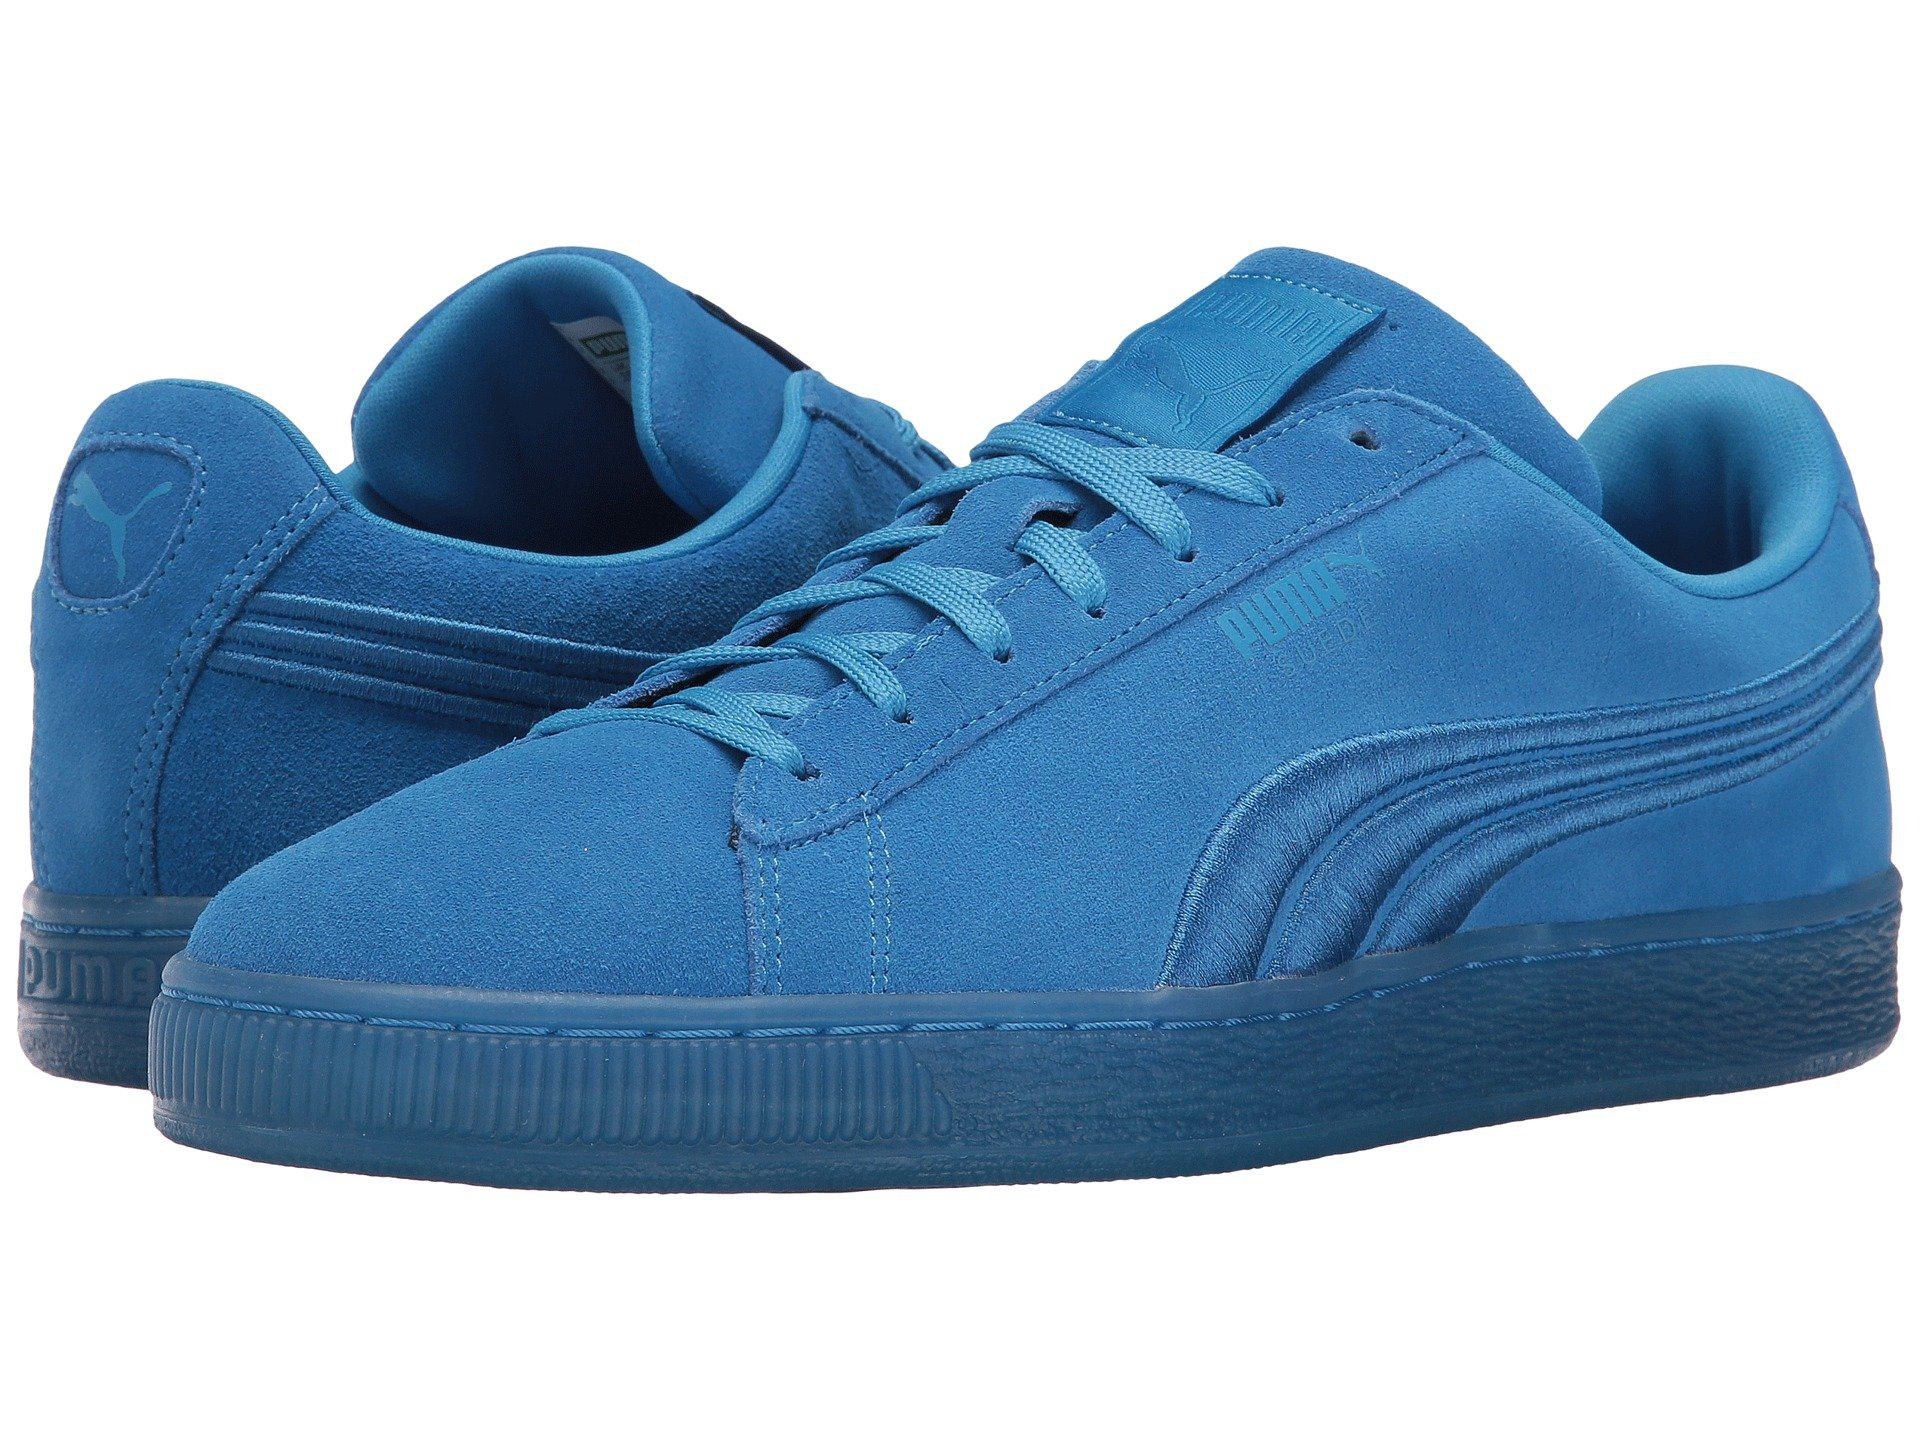 d1edadd63e74 Lyst - PUMA Suede Classic Badged Ice in Blue for Men - Save 32%